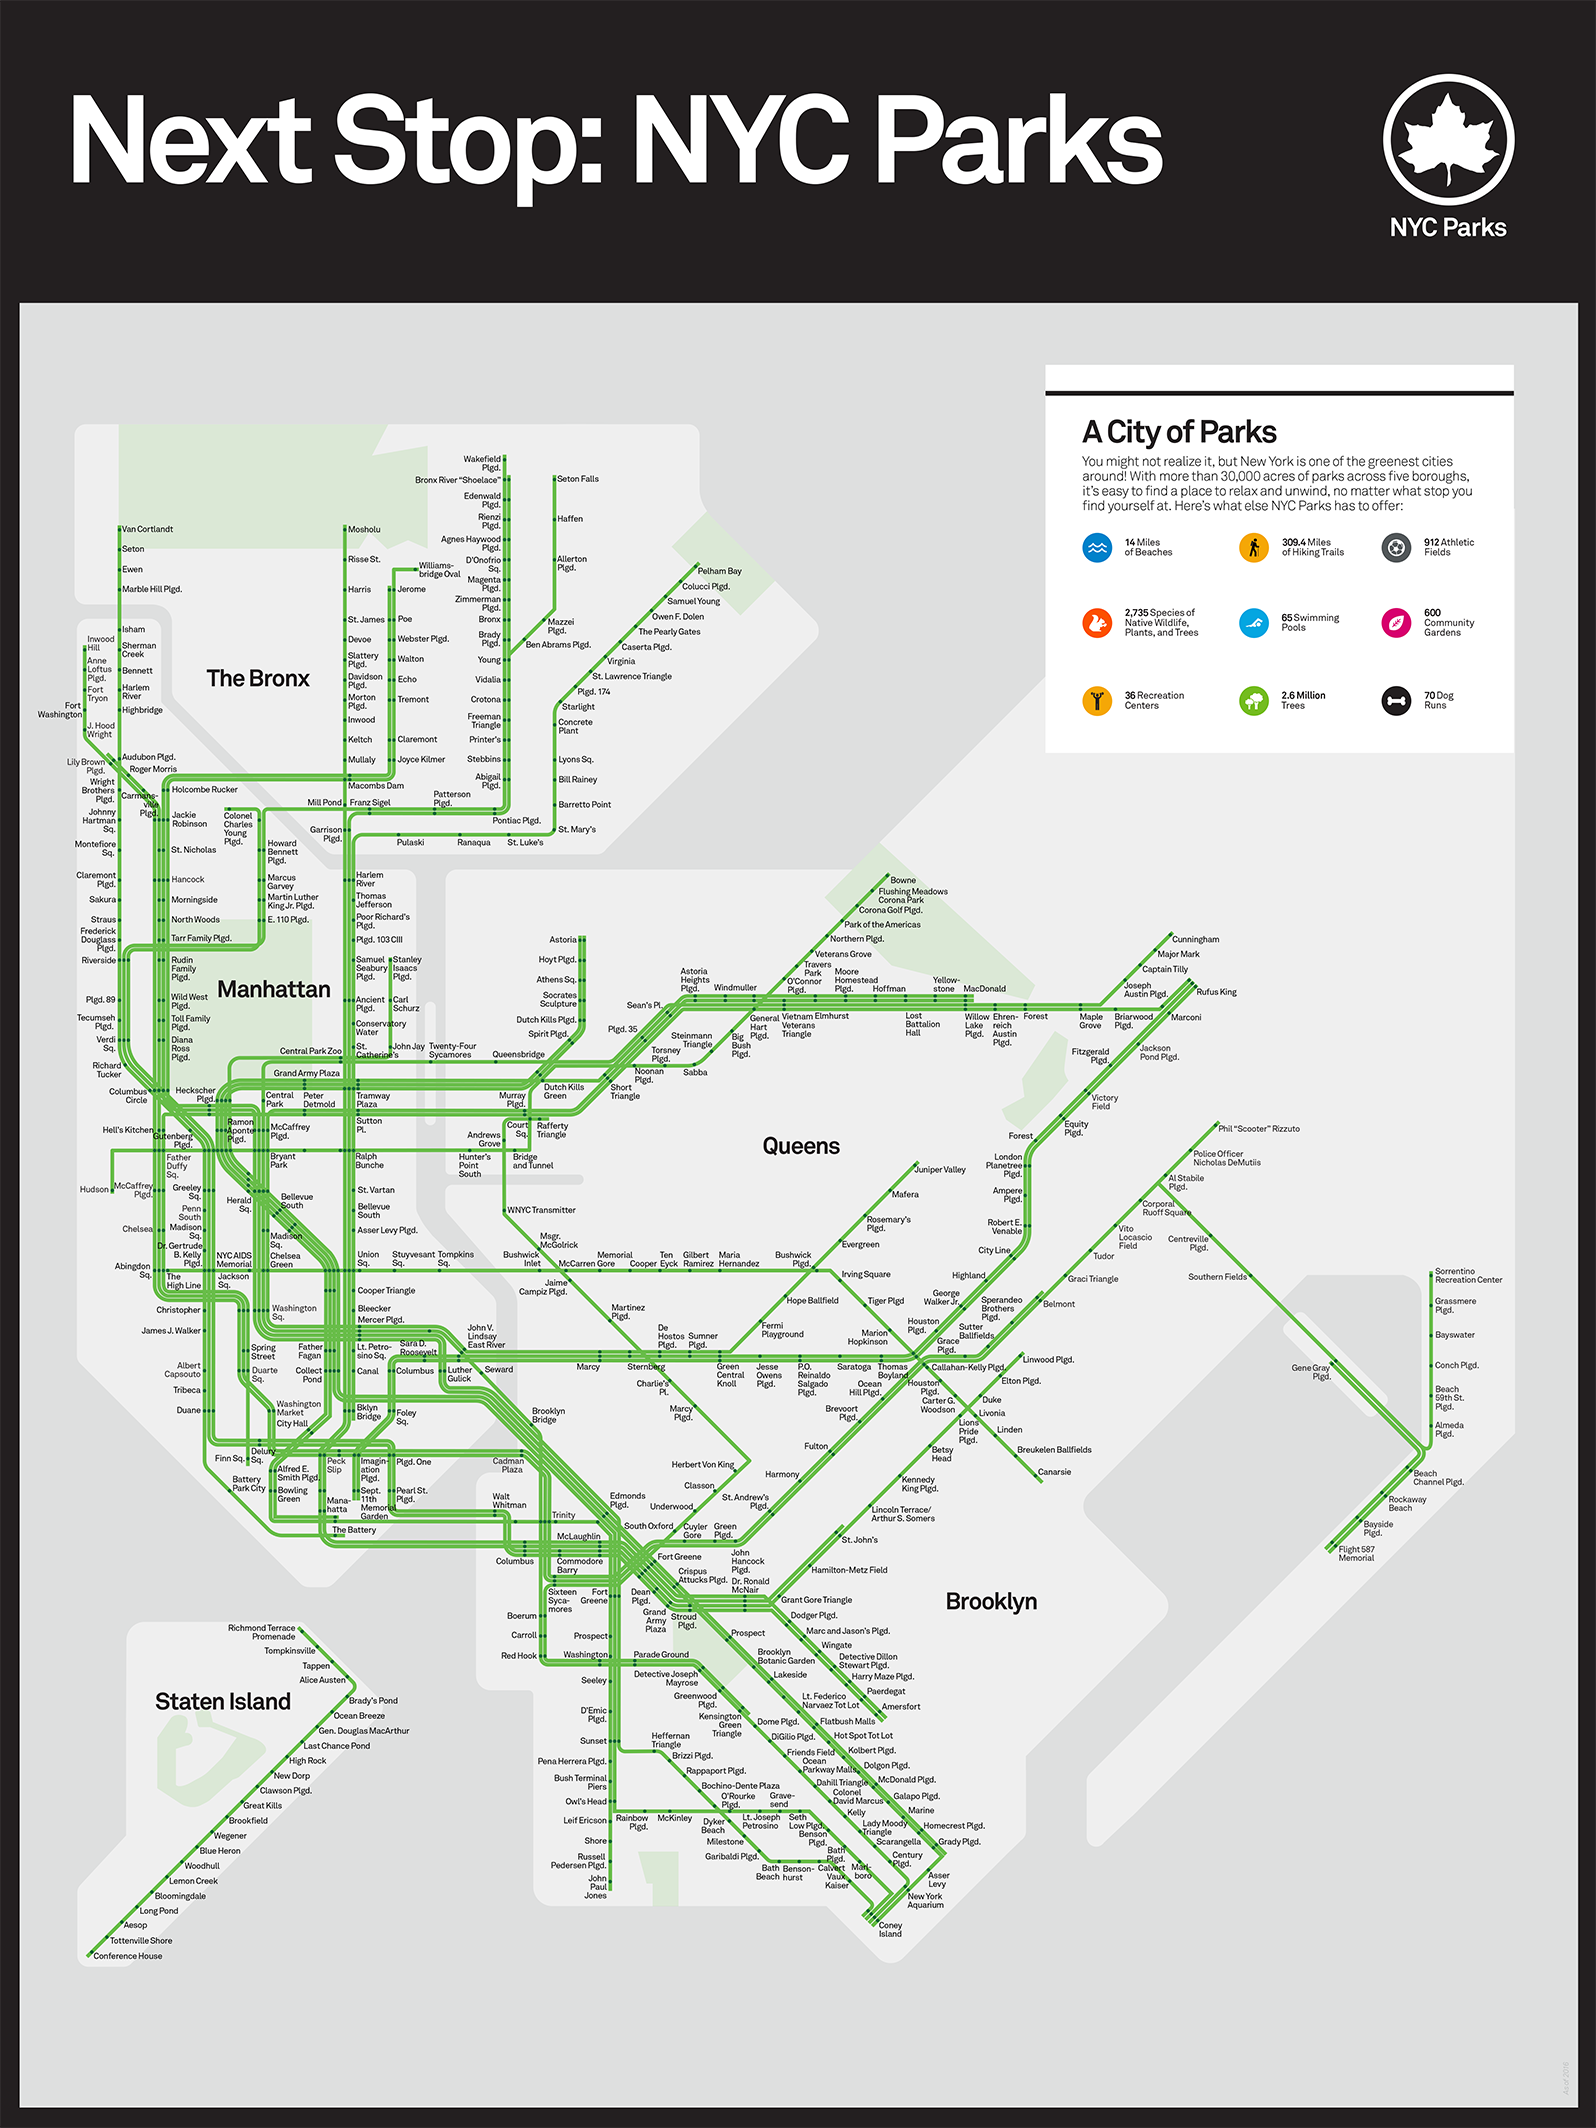 Subway Map Holiday.This Subway Style Map Plots Nyc Parks 6sqft